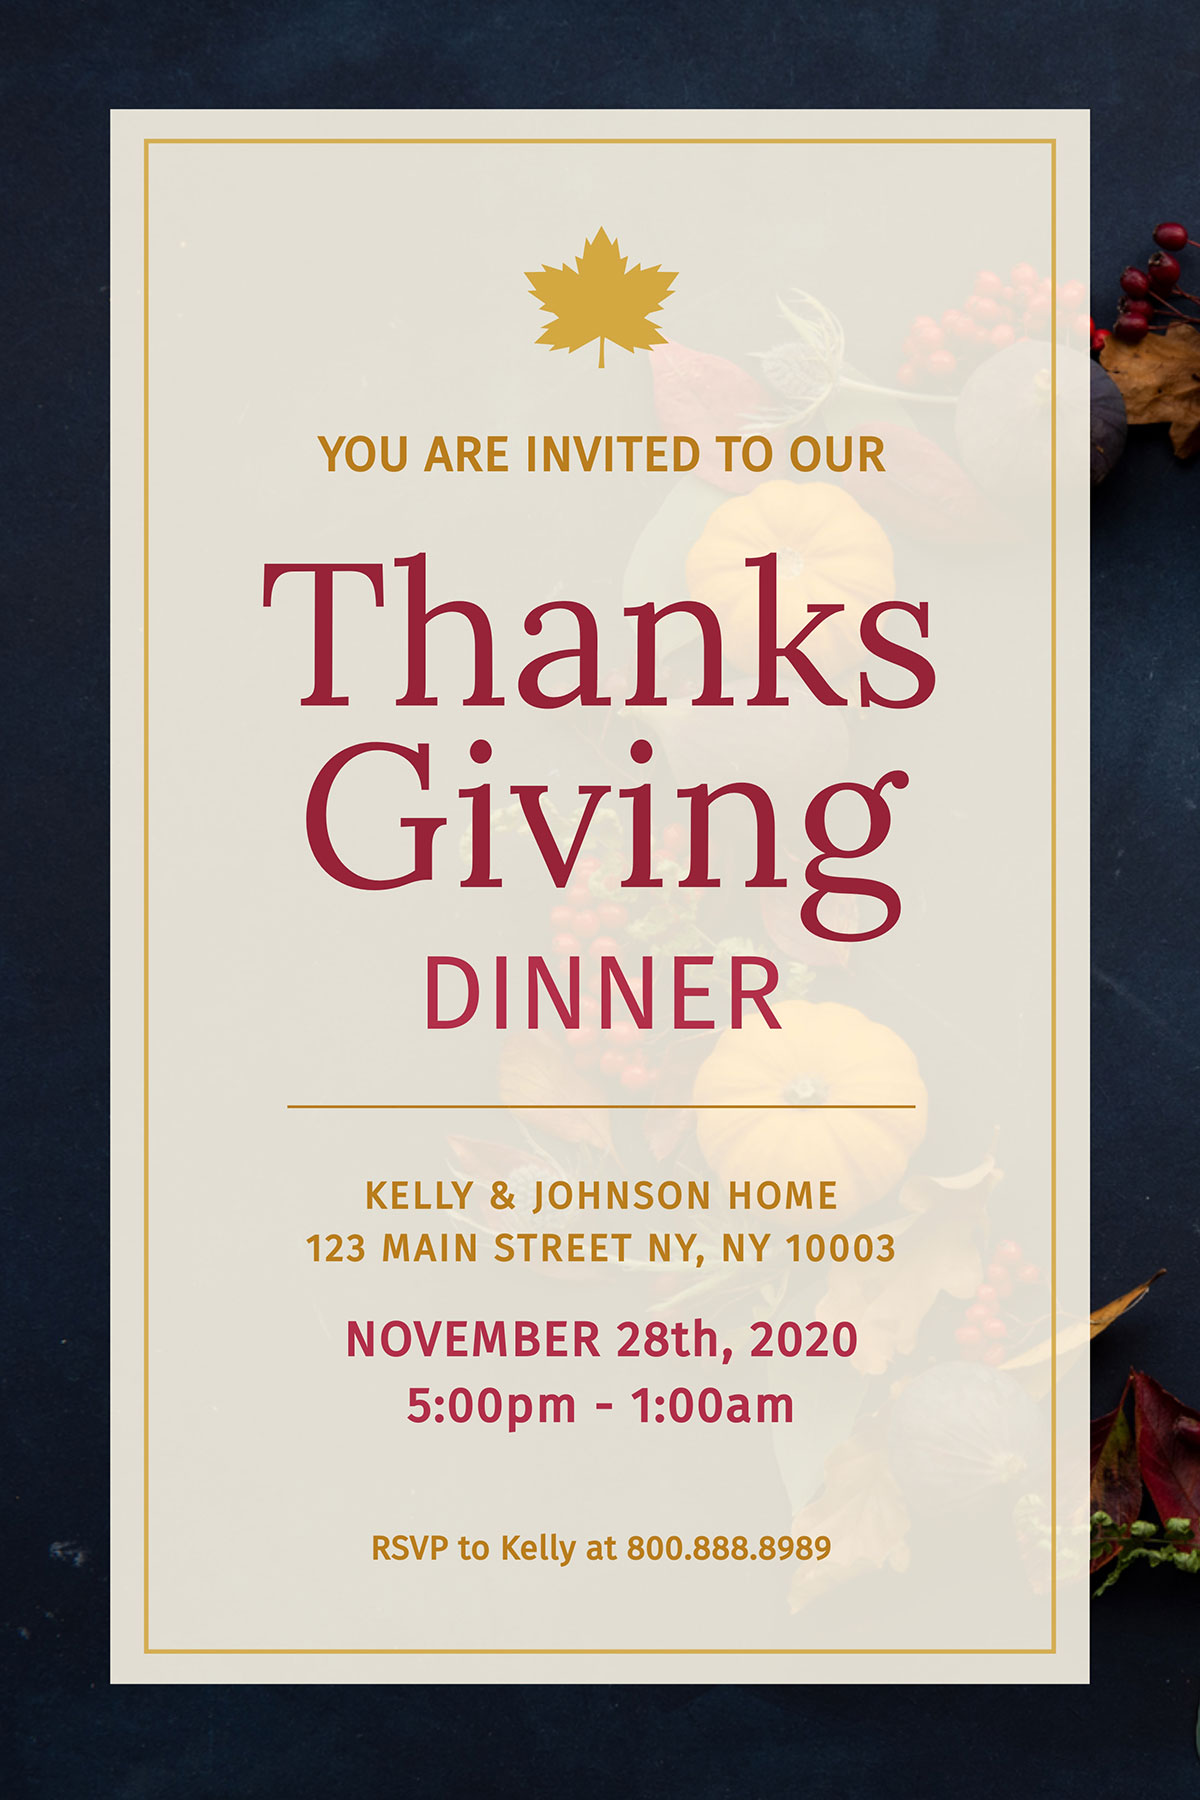 An example of a Visme invitation template that uses stock photography in the background.